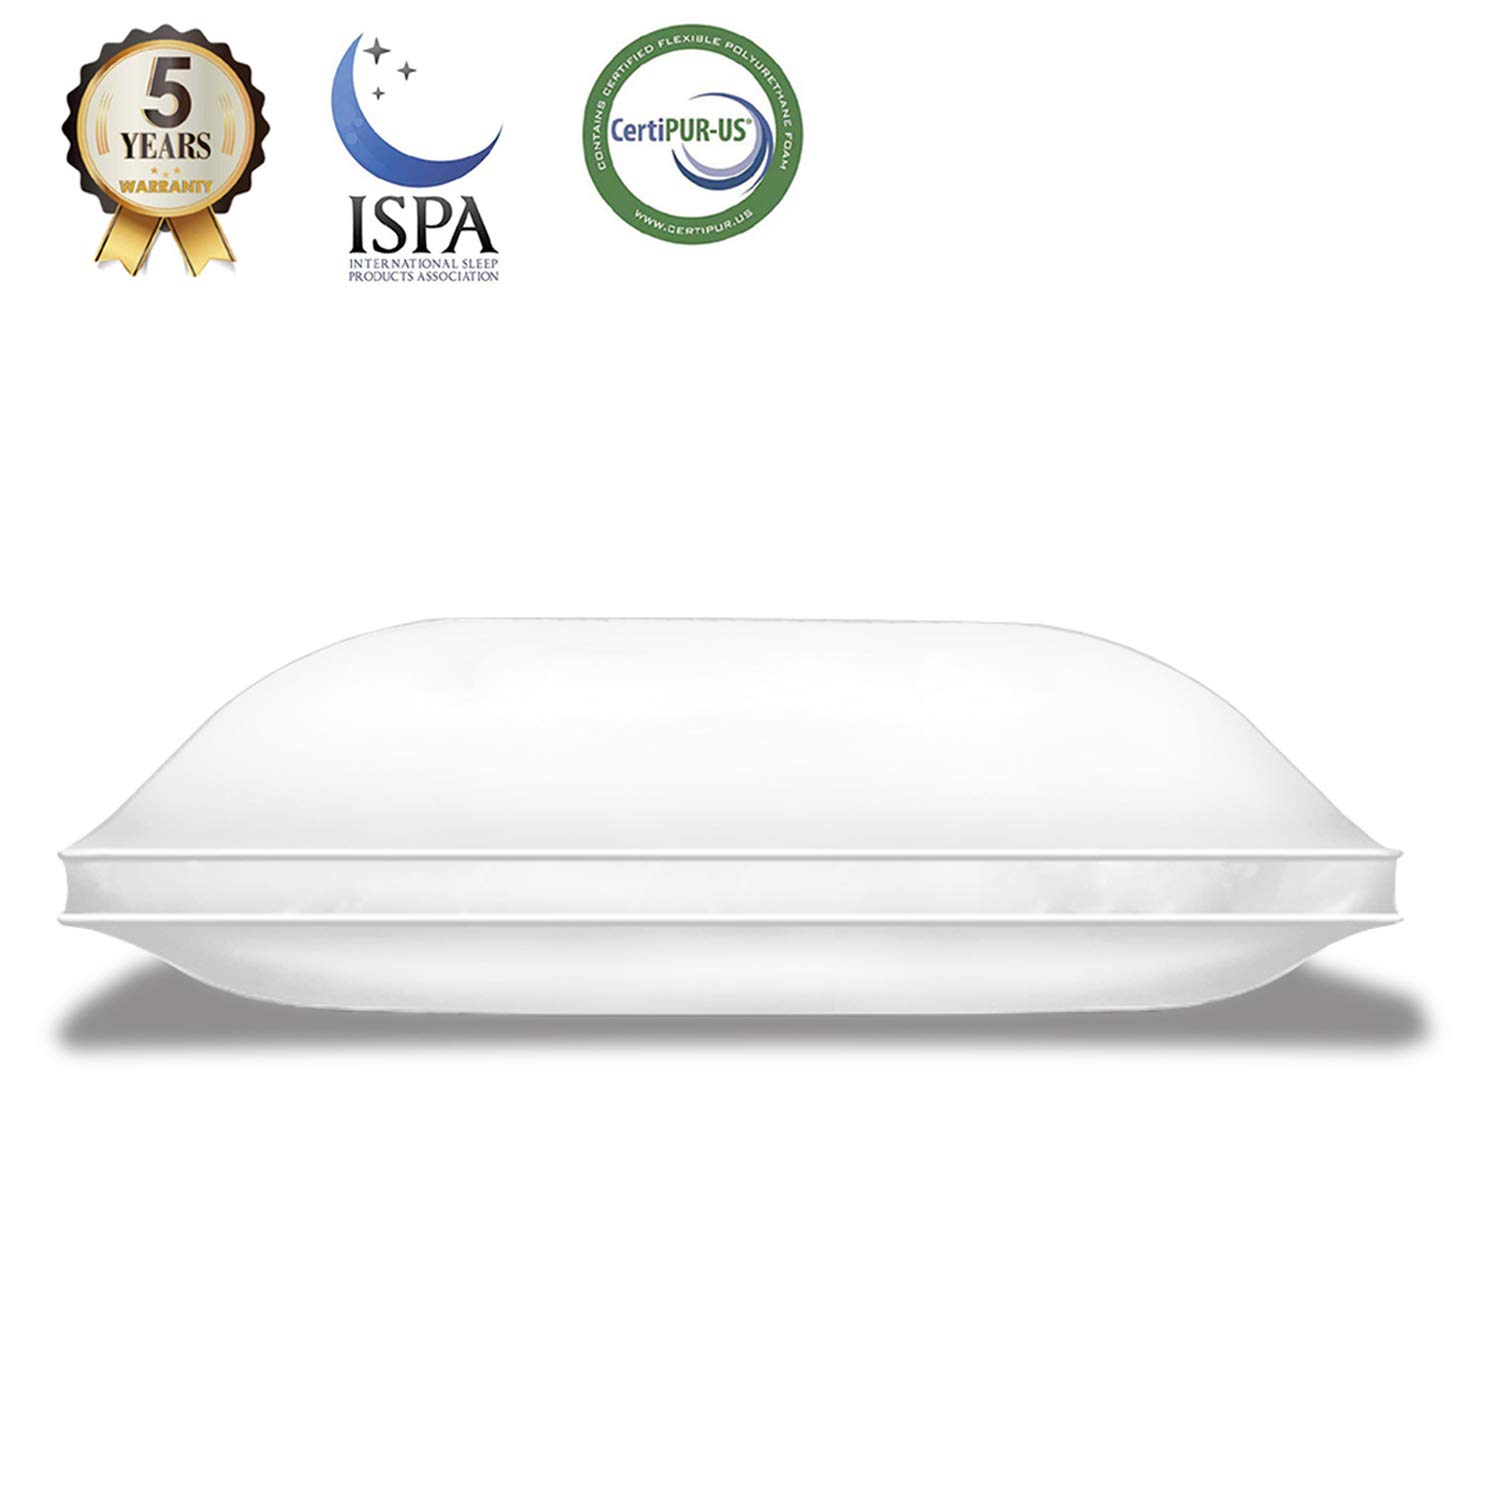 Lunvon Queen Adjustable Shredded Gel Memory Foam Home Bed Pillow for Sleeping Luxury Ventilated Washable Cooling Hypoallergenic Cotton Cover Protector CertiPUR-US Certification for Your Health, White